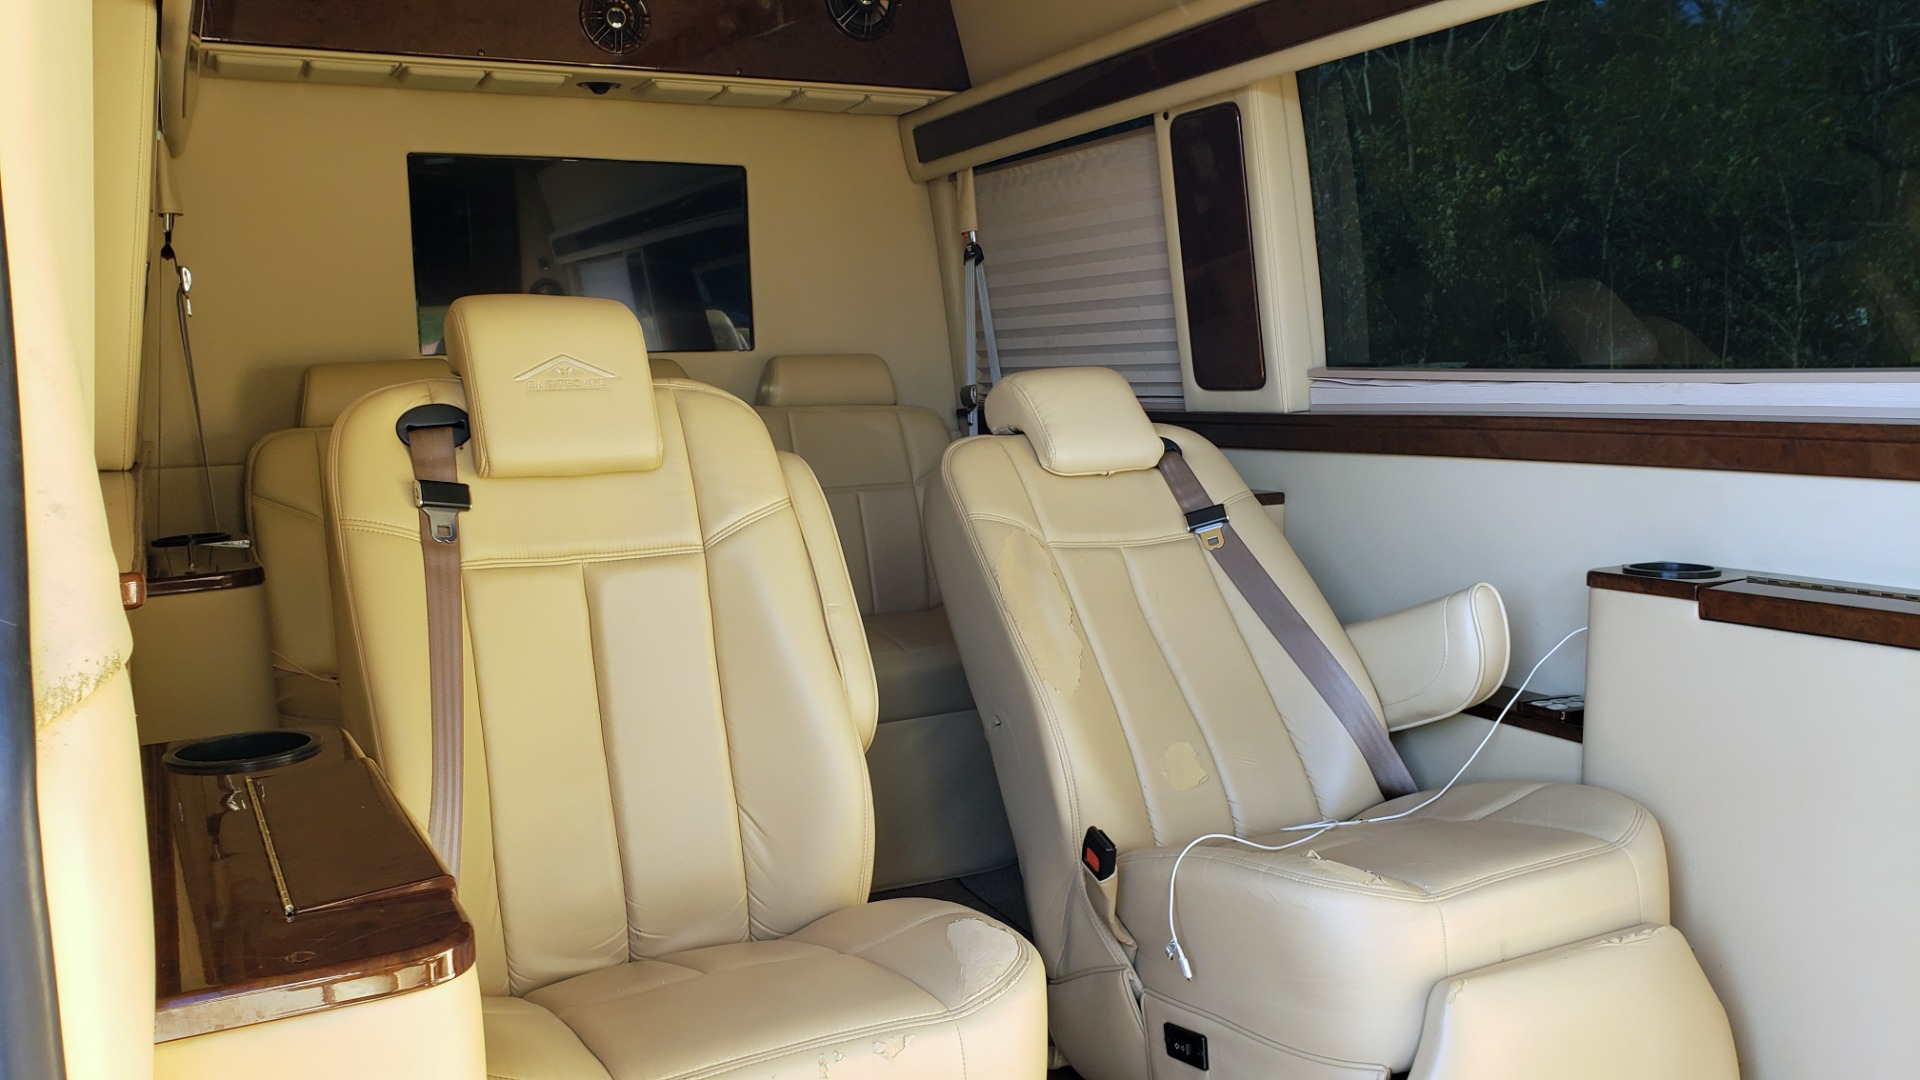 Used 2012 Mercedes-Benz SPRINTER CARGO VAN EXT / OFFICE ON WHEELS / FLT SCREEN TV / LOUNGE for sale Sold at Formula Imports in Charlotte NC 28227 8